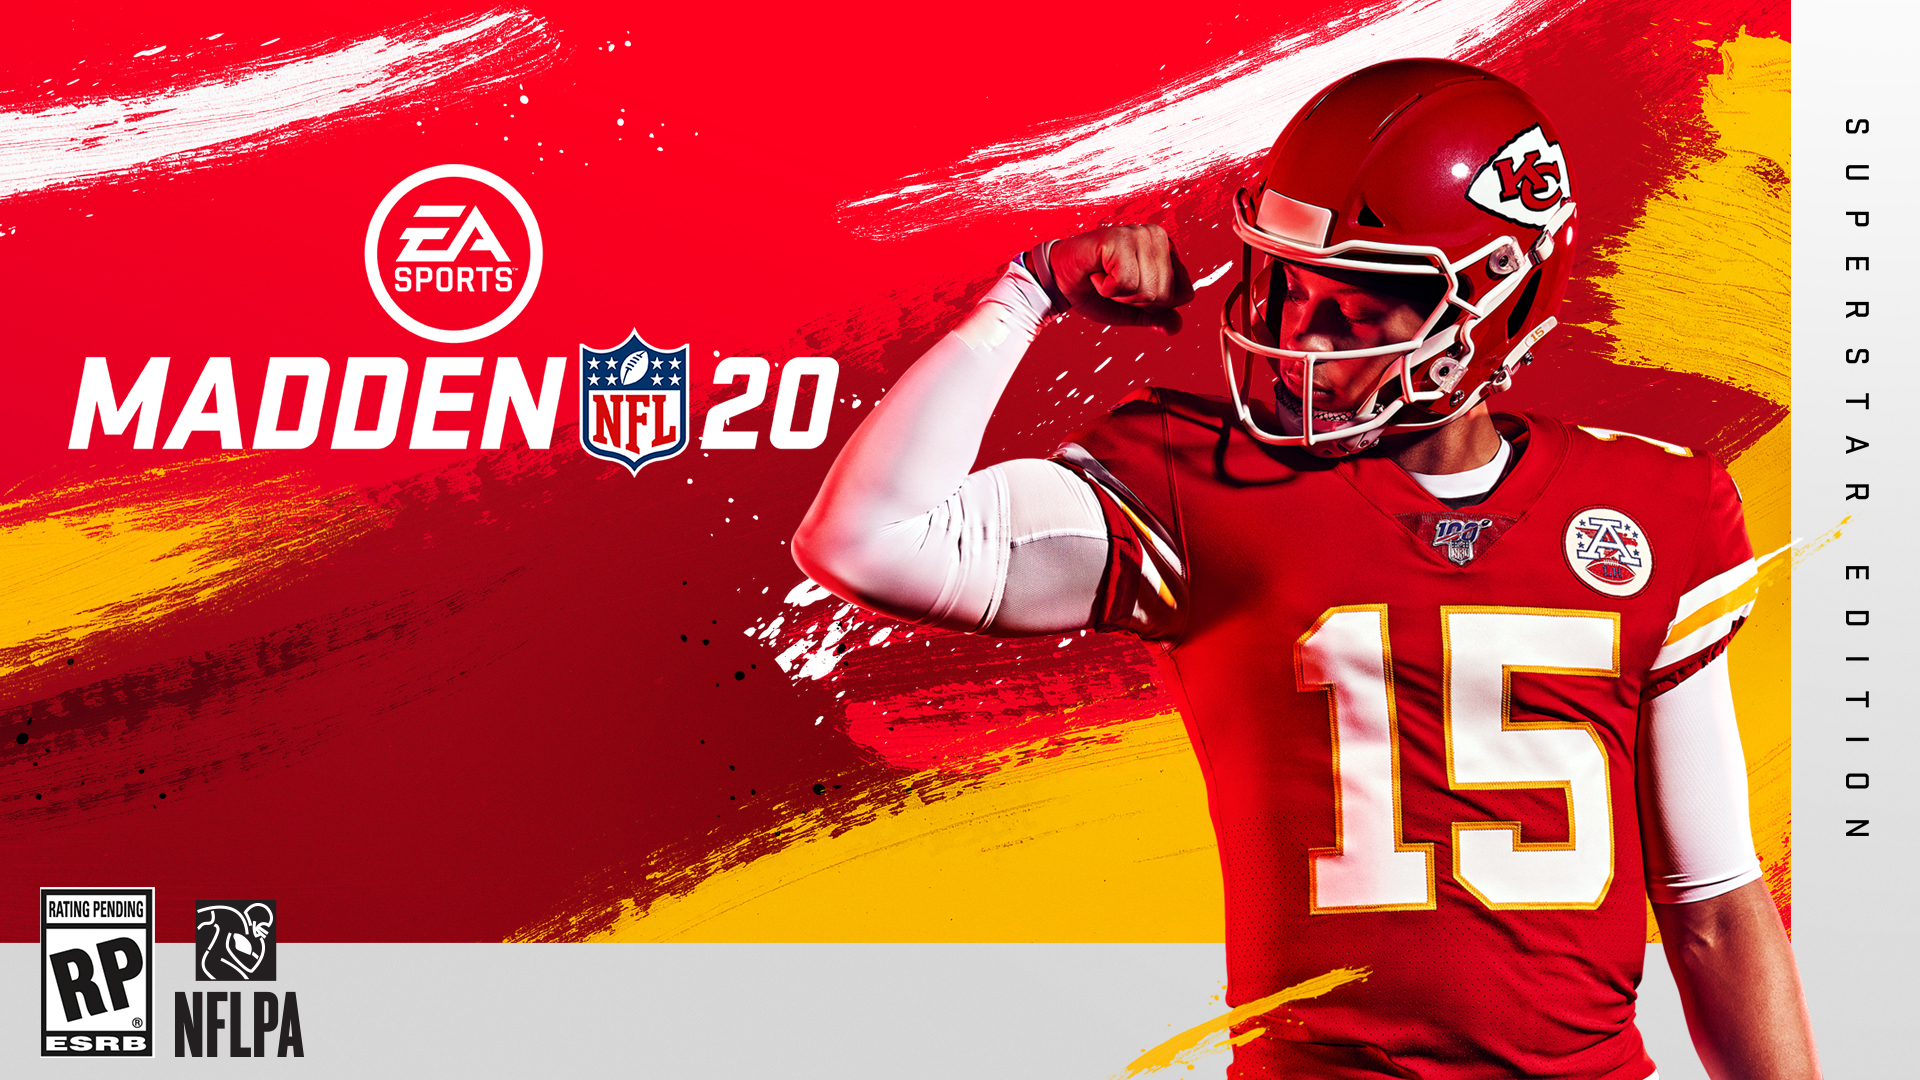 15 Madden 20 Wallpapers On Wallpapersafari